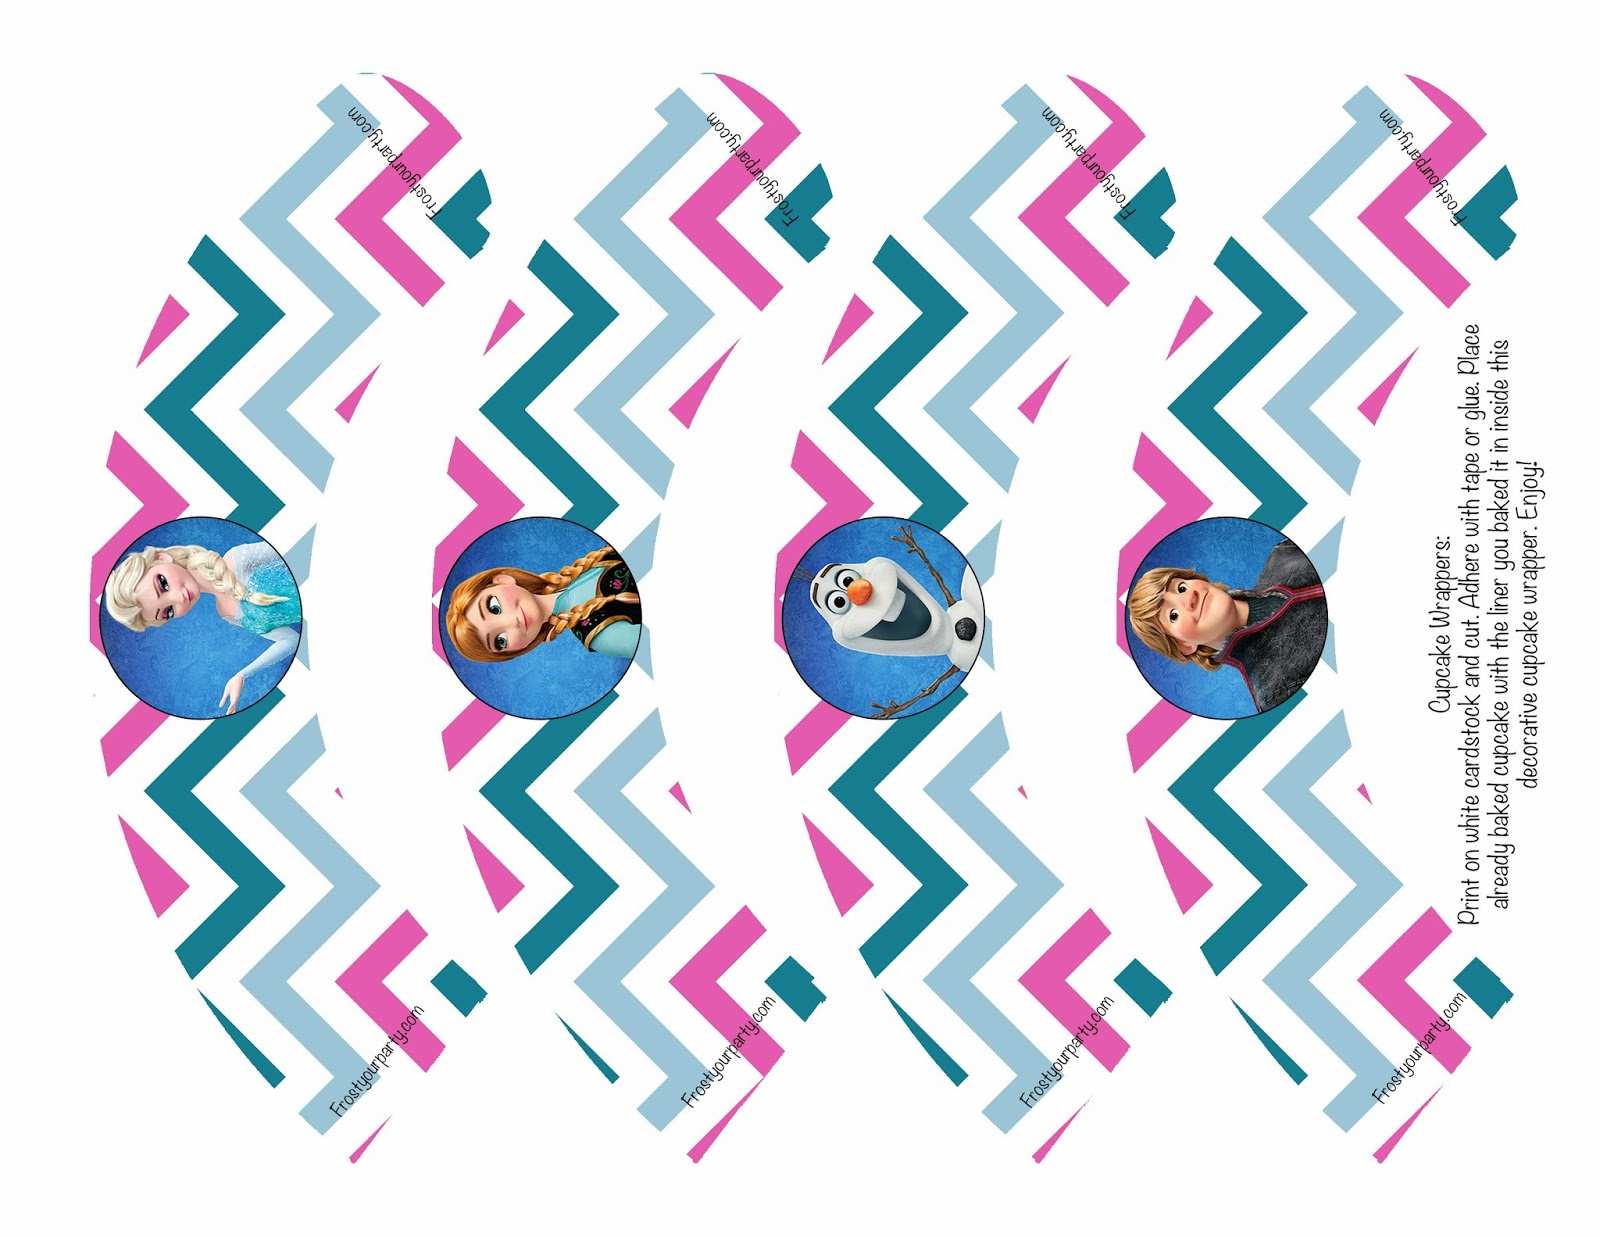 image relating to Free Frozen Printable titled Frozen Cupcake Toppers Printable Free of charge absolutely free graphic